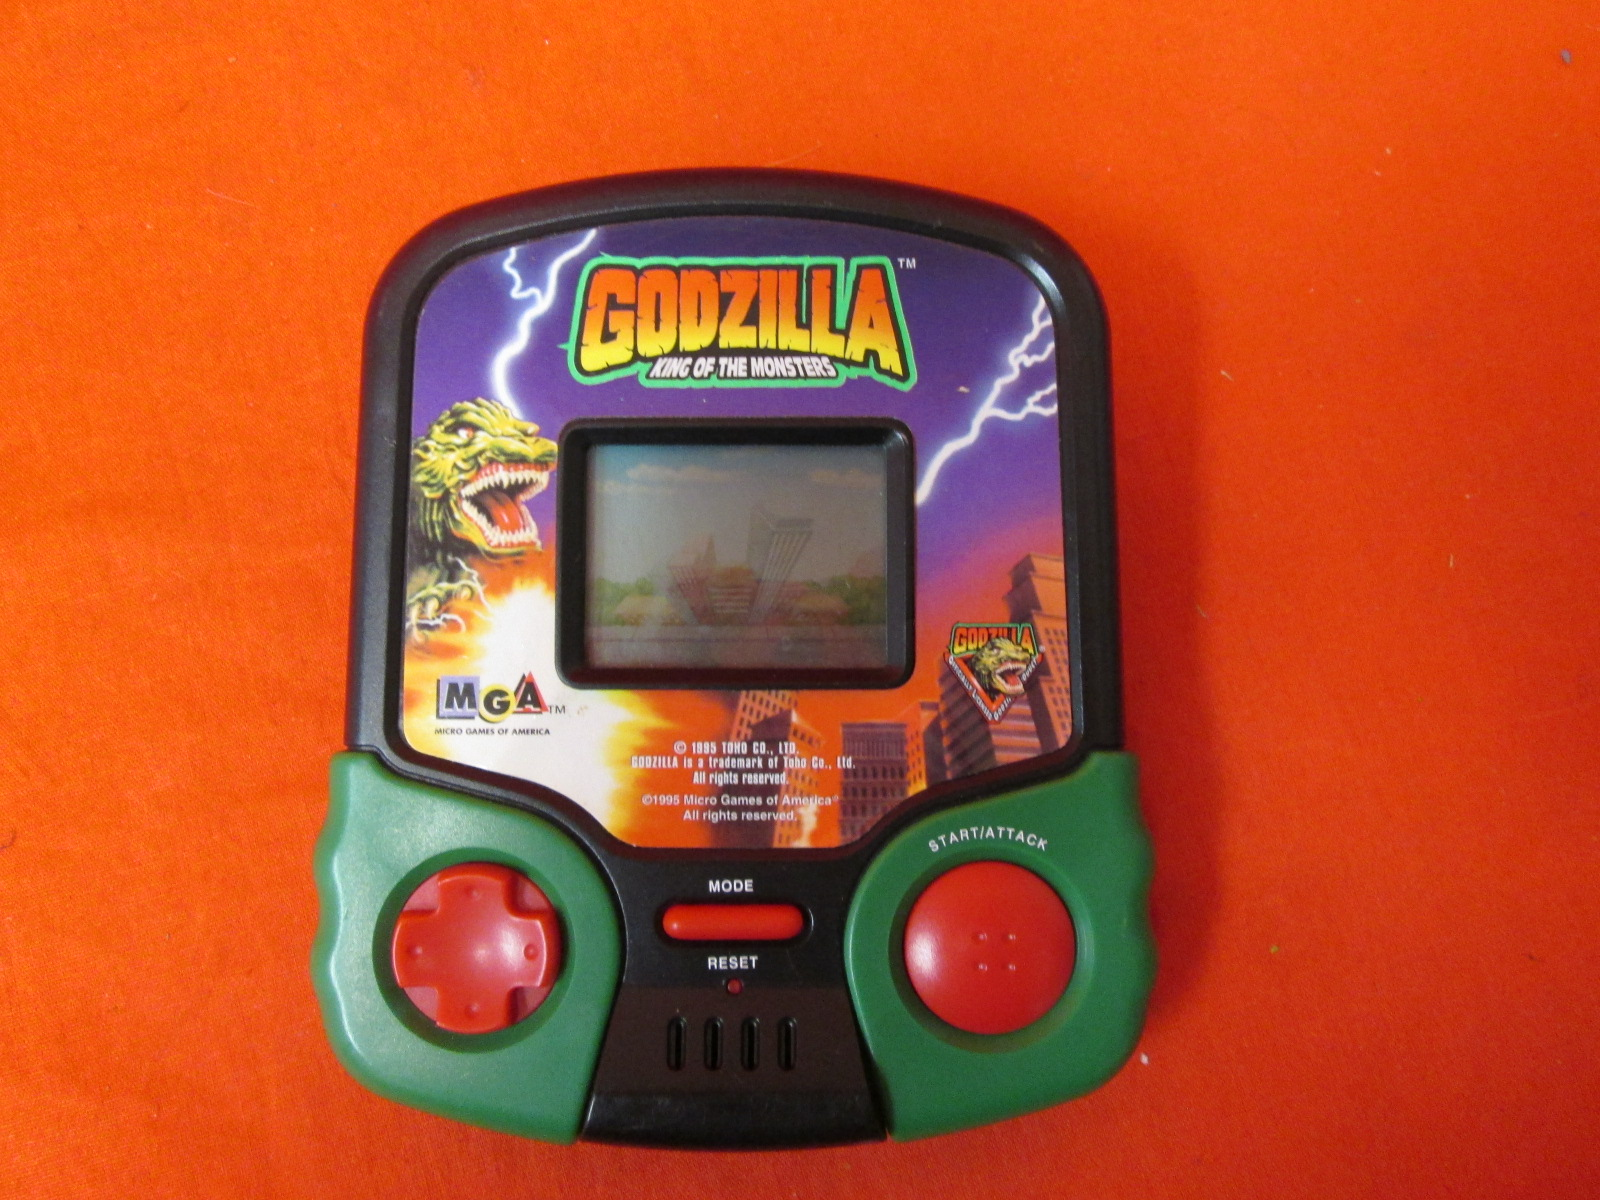 Godzilla King Of The Monsters Handheld LCD Video Game Toy